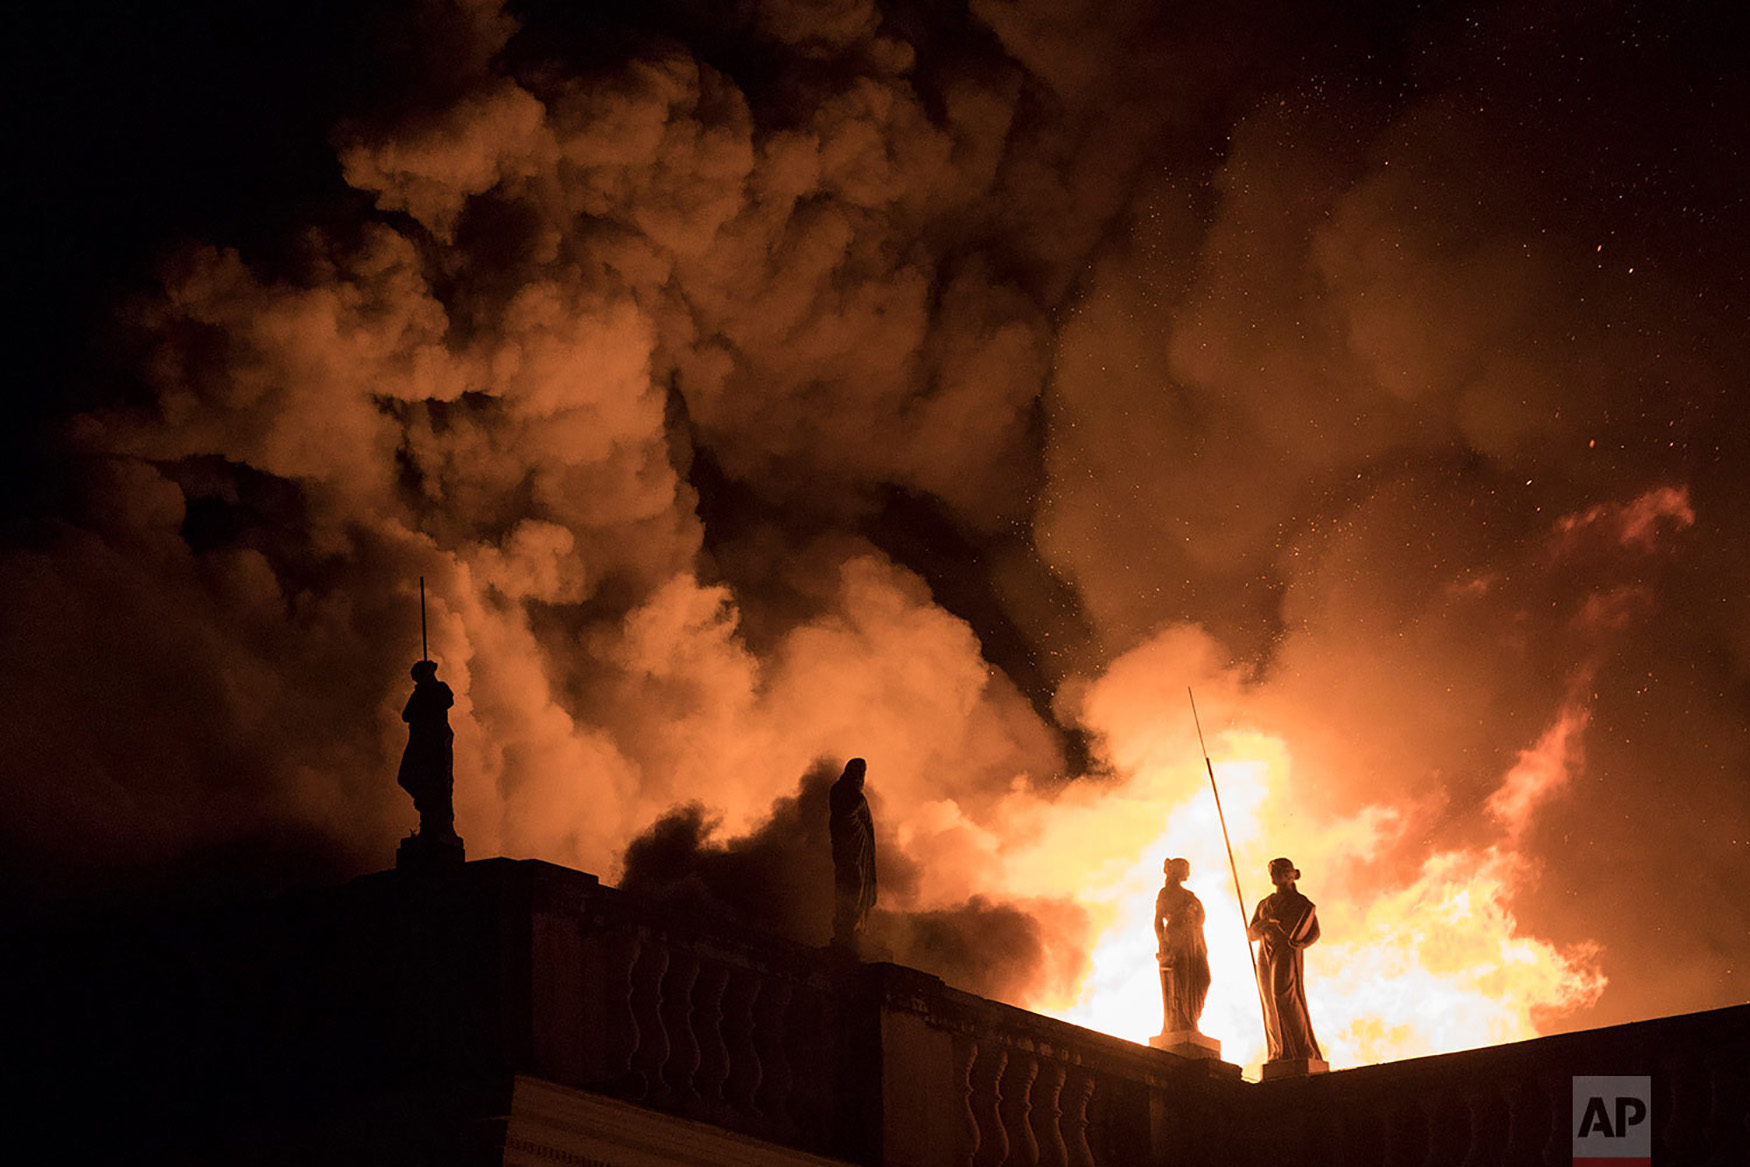 Flames engulf the 200-year-old National Museum of Brazil, in Rio de Janeiro, Brazil, Sept. 2, 2018. According to its website, the museum has thousands of items related to the history of Brazil and other countries. The museum is part of the Federal University of Rio de Janeiro. (AP Photo/Leo Correa)